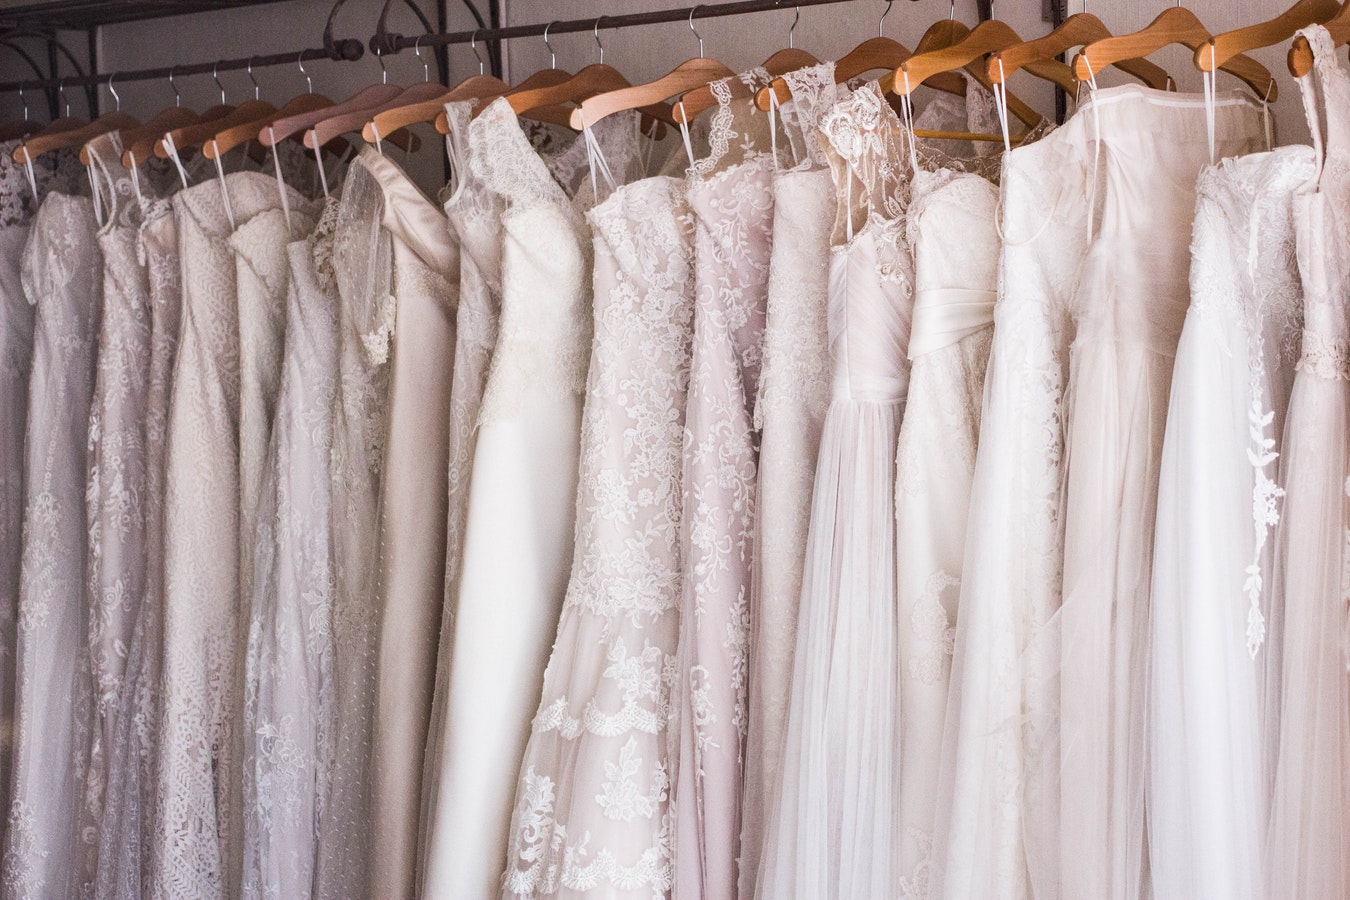 5 Tips To Find The Perfect Wedding Dress On A Budget